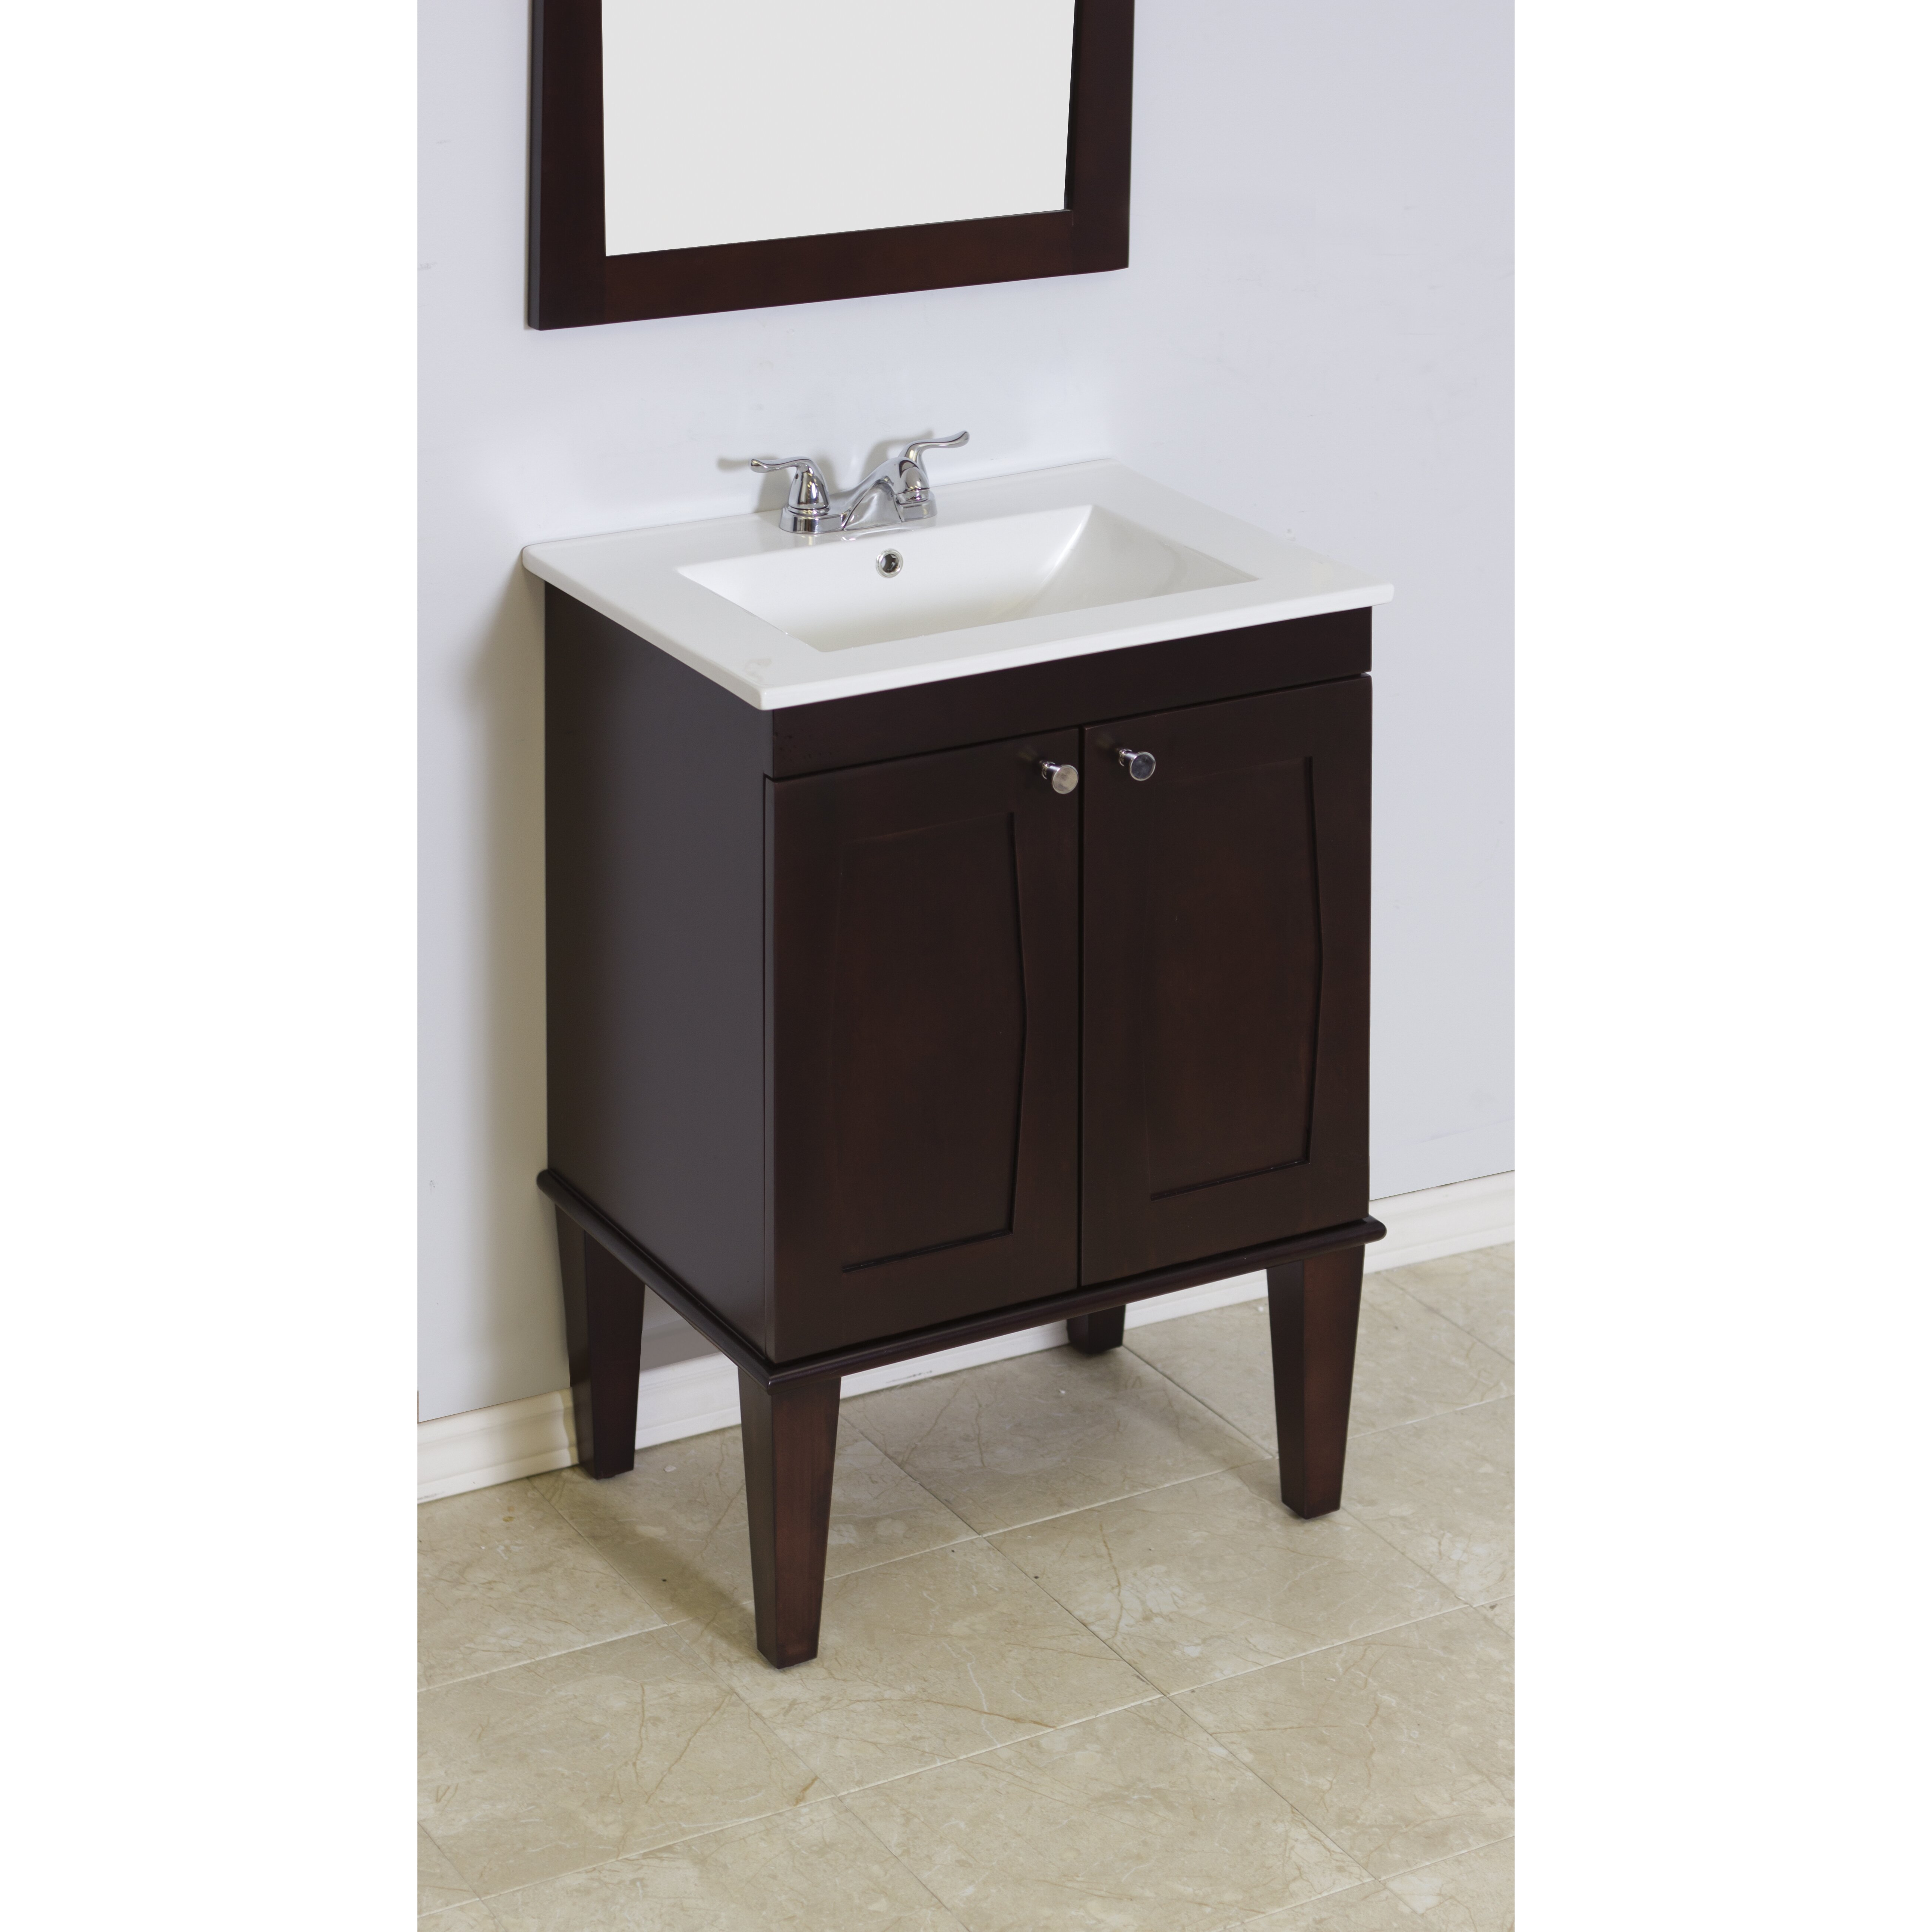 American imaginations 32 single transitional bathroom vanity set wayfair Transitional bathroom vanities